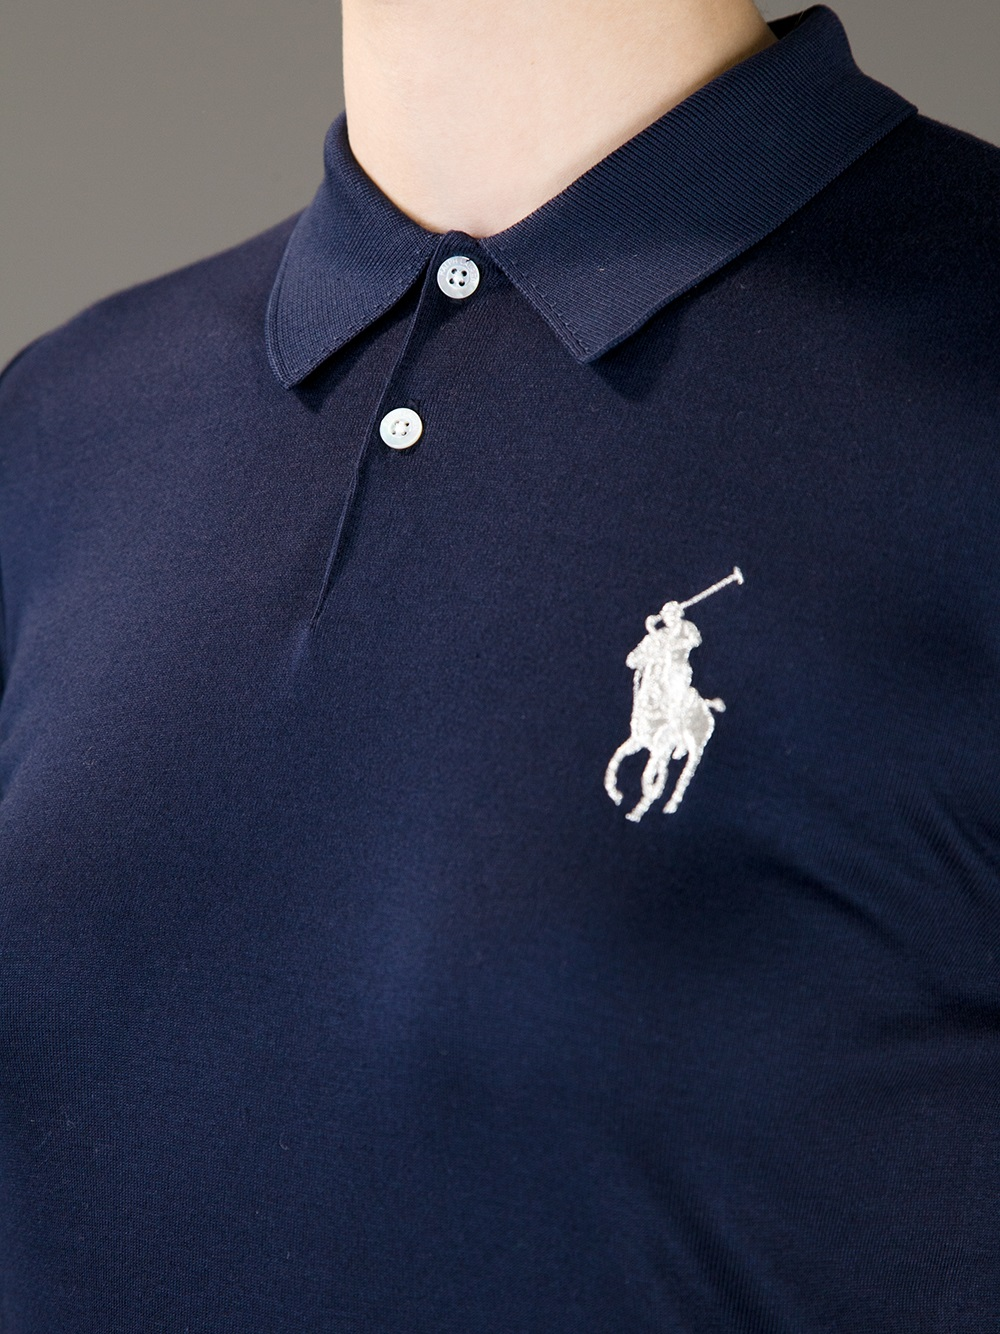 Lyst ralph lauren logo polo shirt in blue for Polo shirts with logos